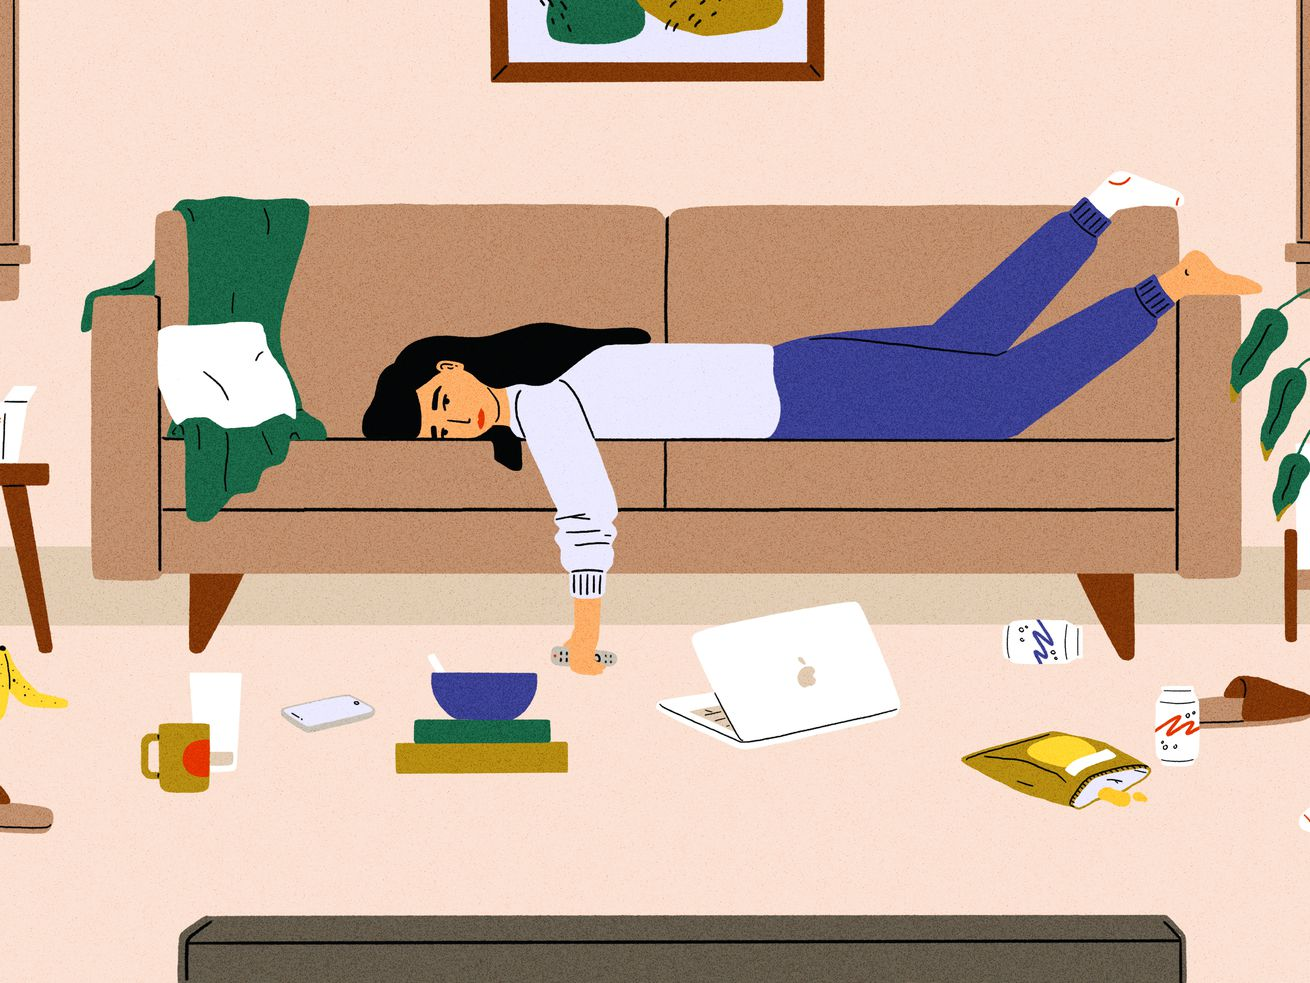 A woman in sweats lies lazily on her couch clutching a remote control in front of the television. A laptop, snacks, and old dishes lie on the floor in front of her.